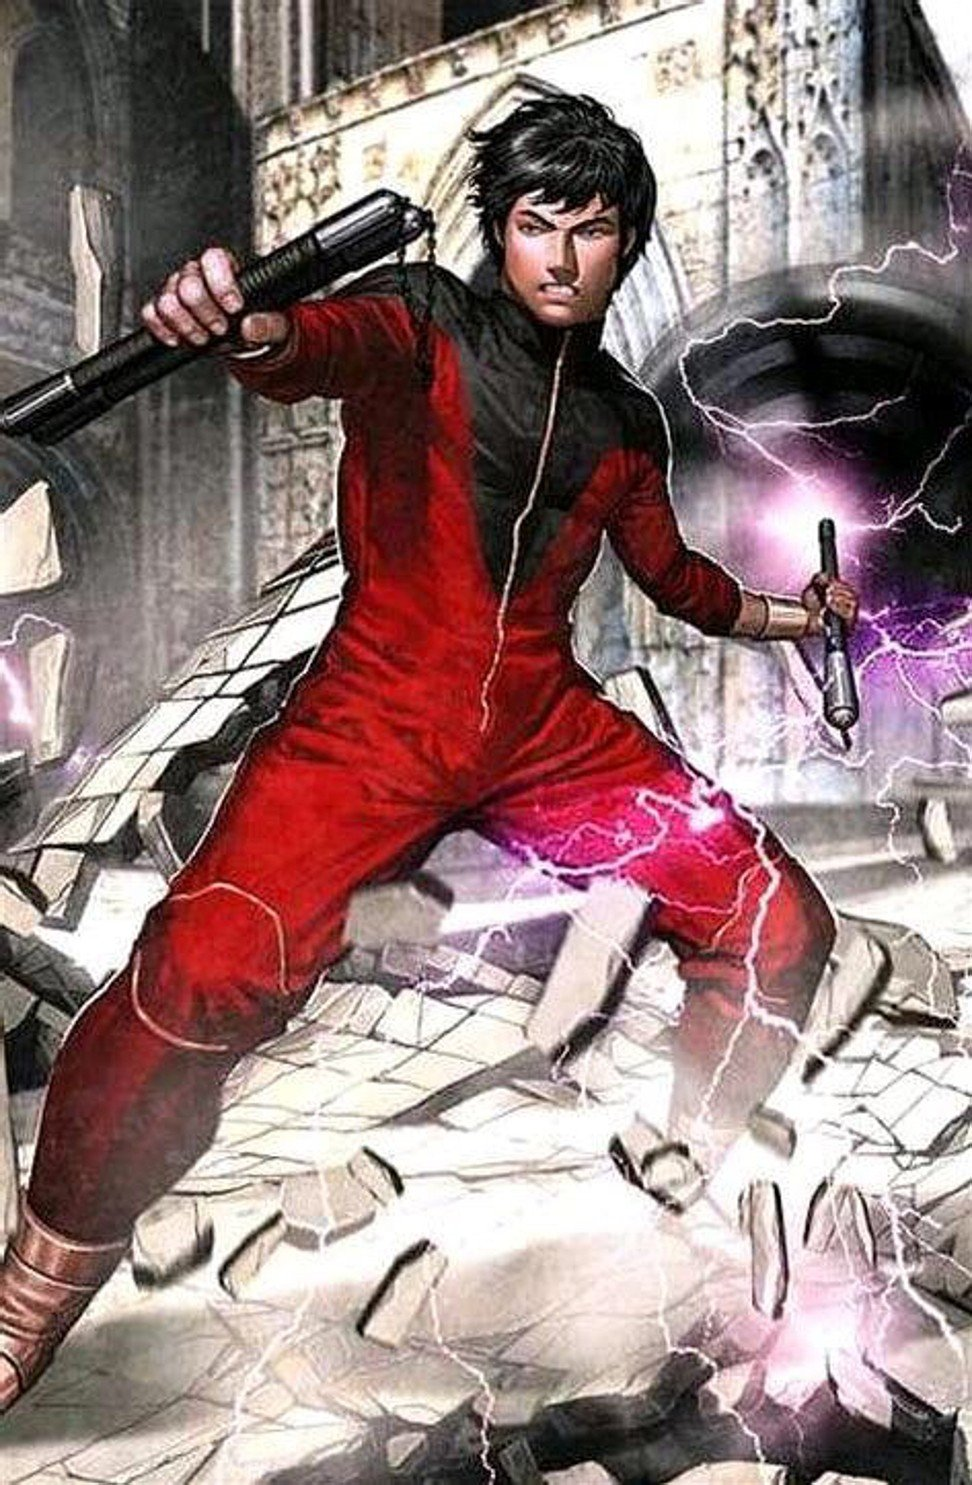 Shang-Chi made his debut in Marvel Comics in 1973. Photo: Weibo